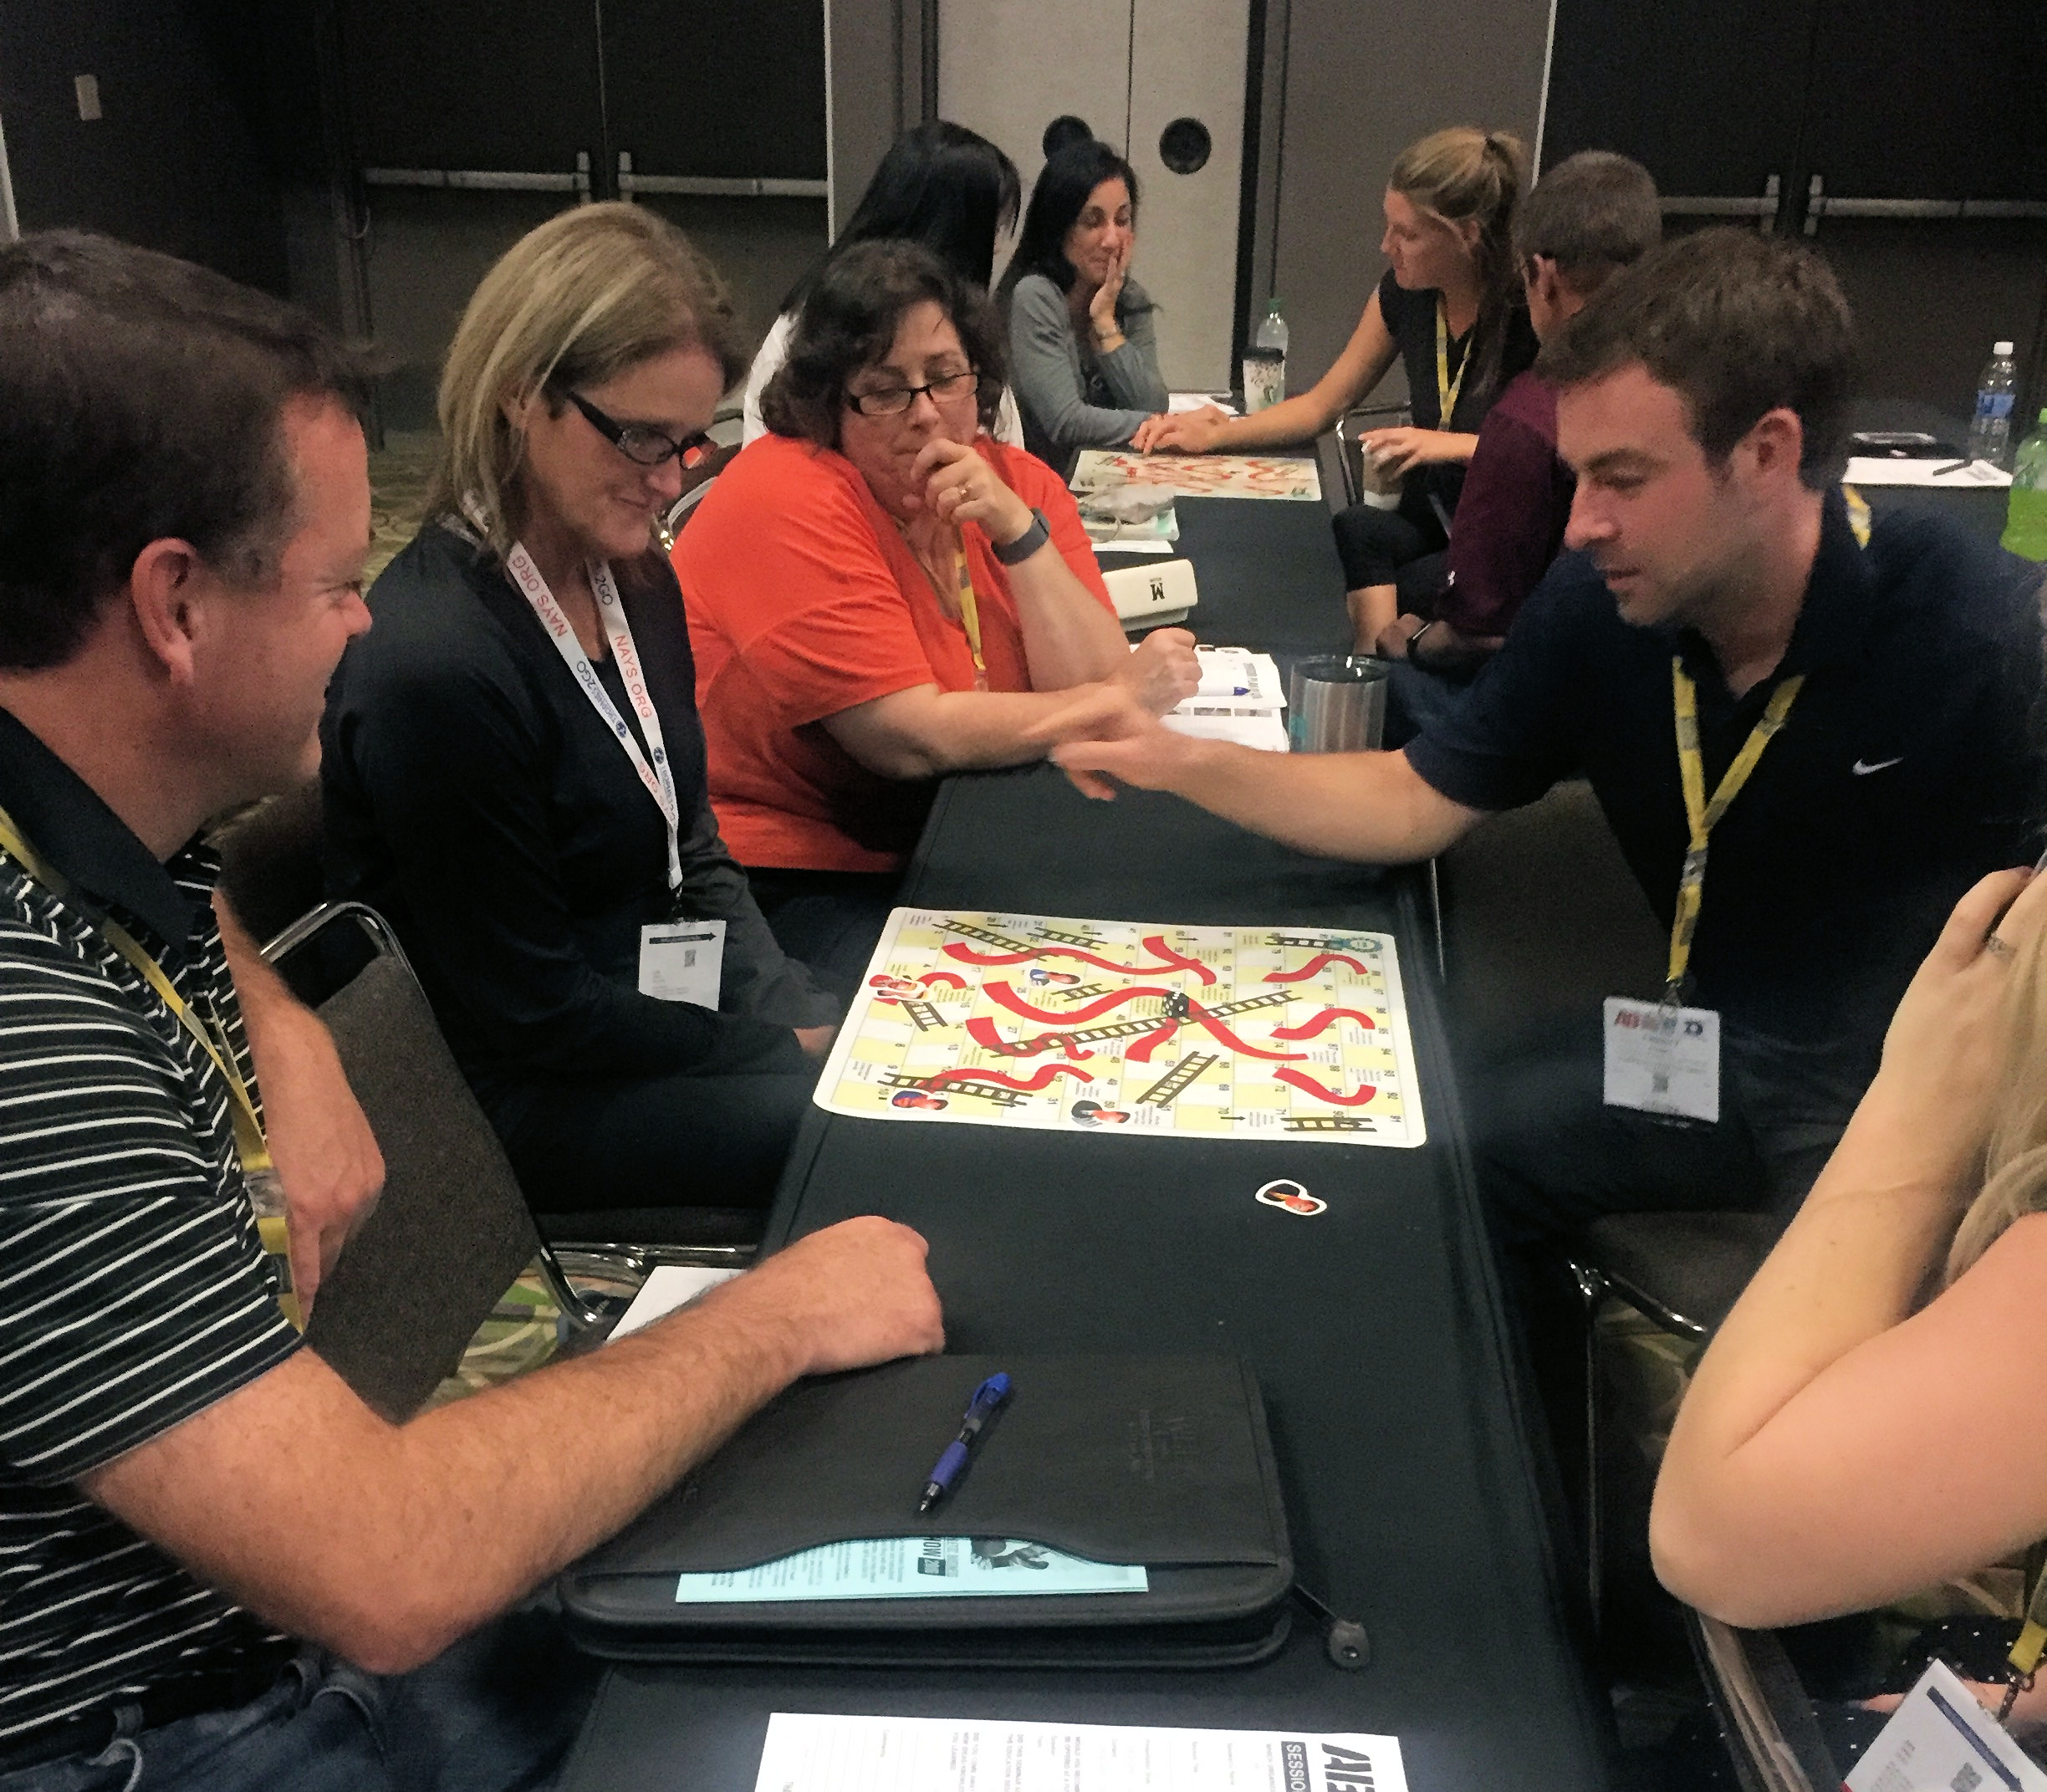 """bobbi created a custom """"supervisory chutes and ladder"""" game for her breakout session on dealing with difficult employees at the athletic Business conference."""